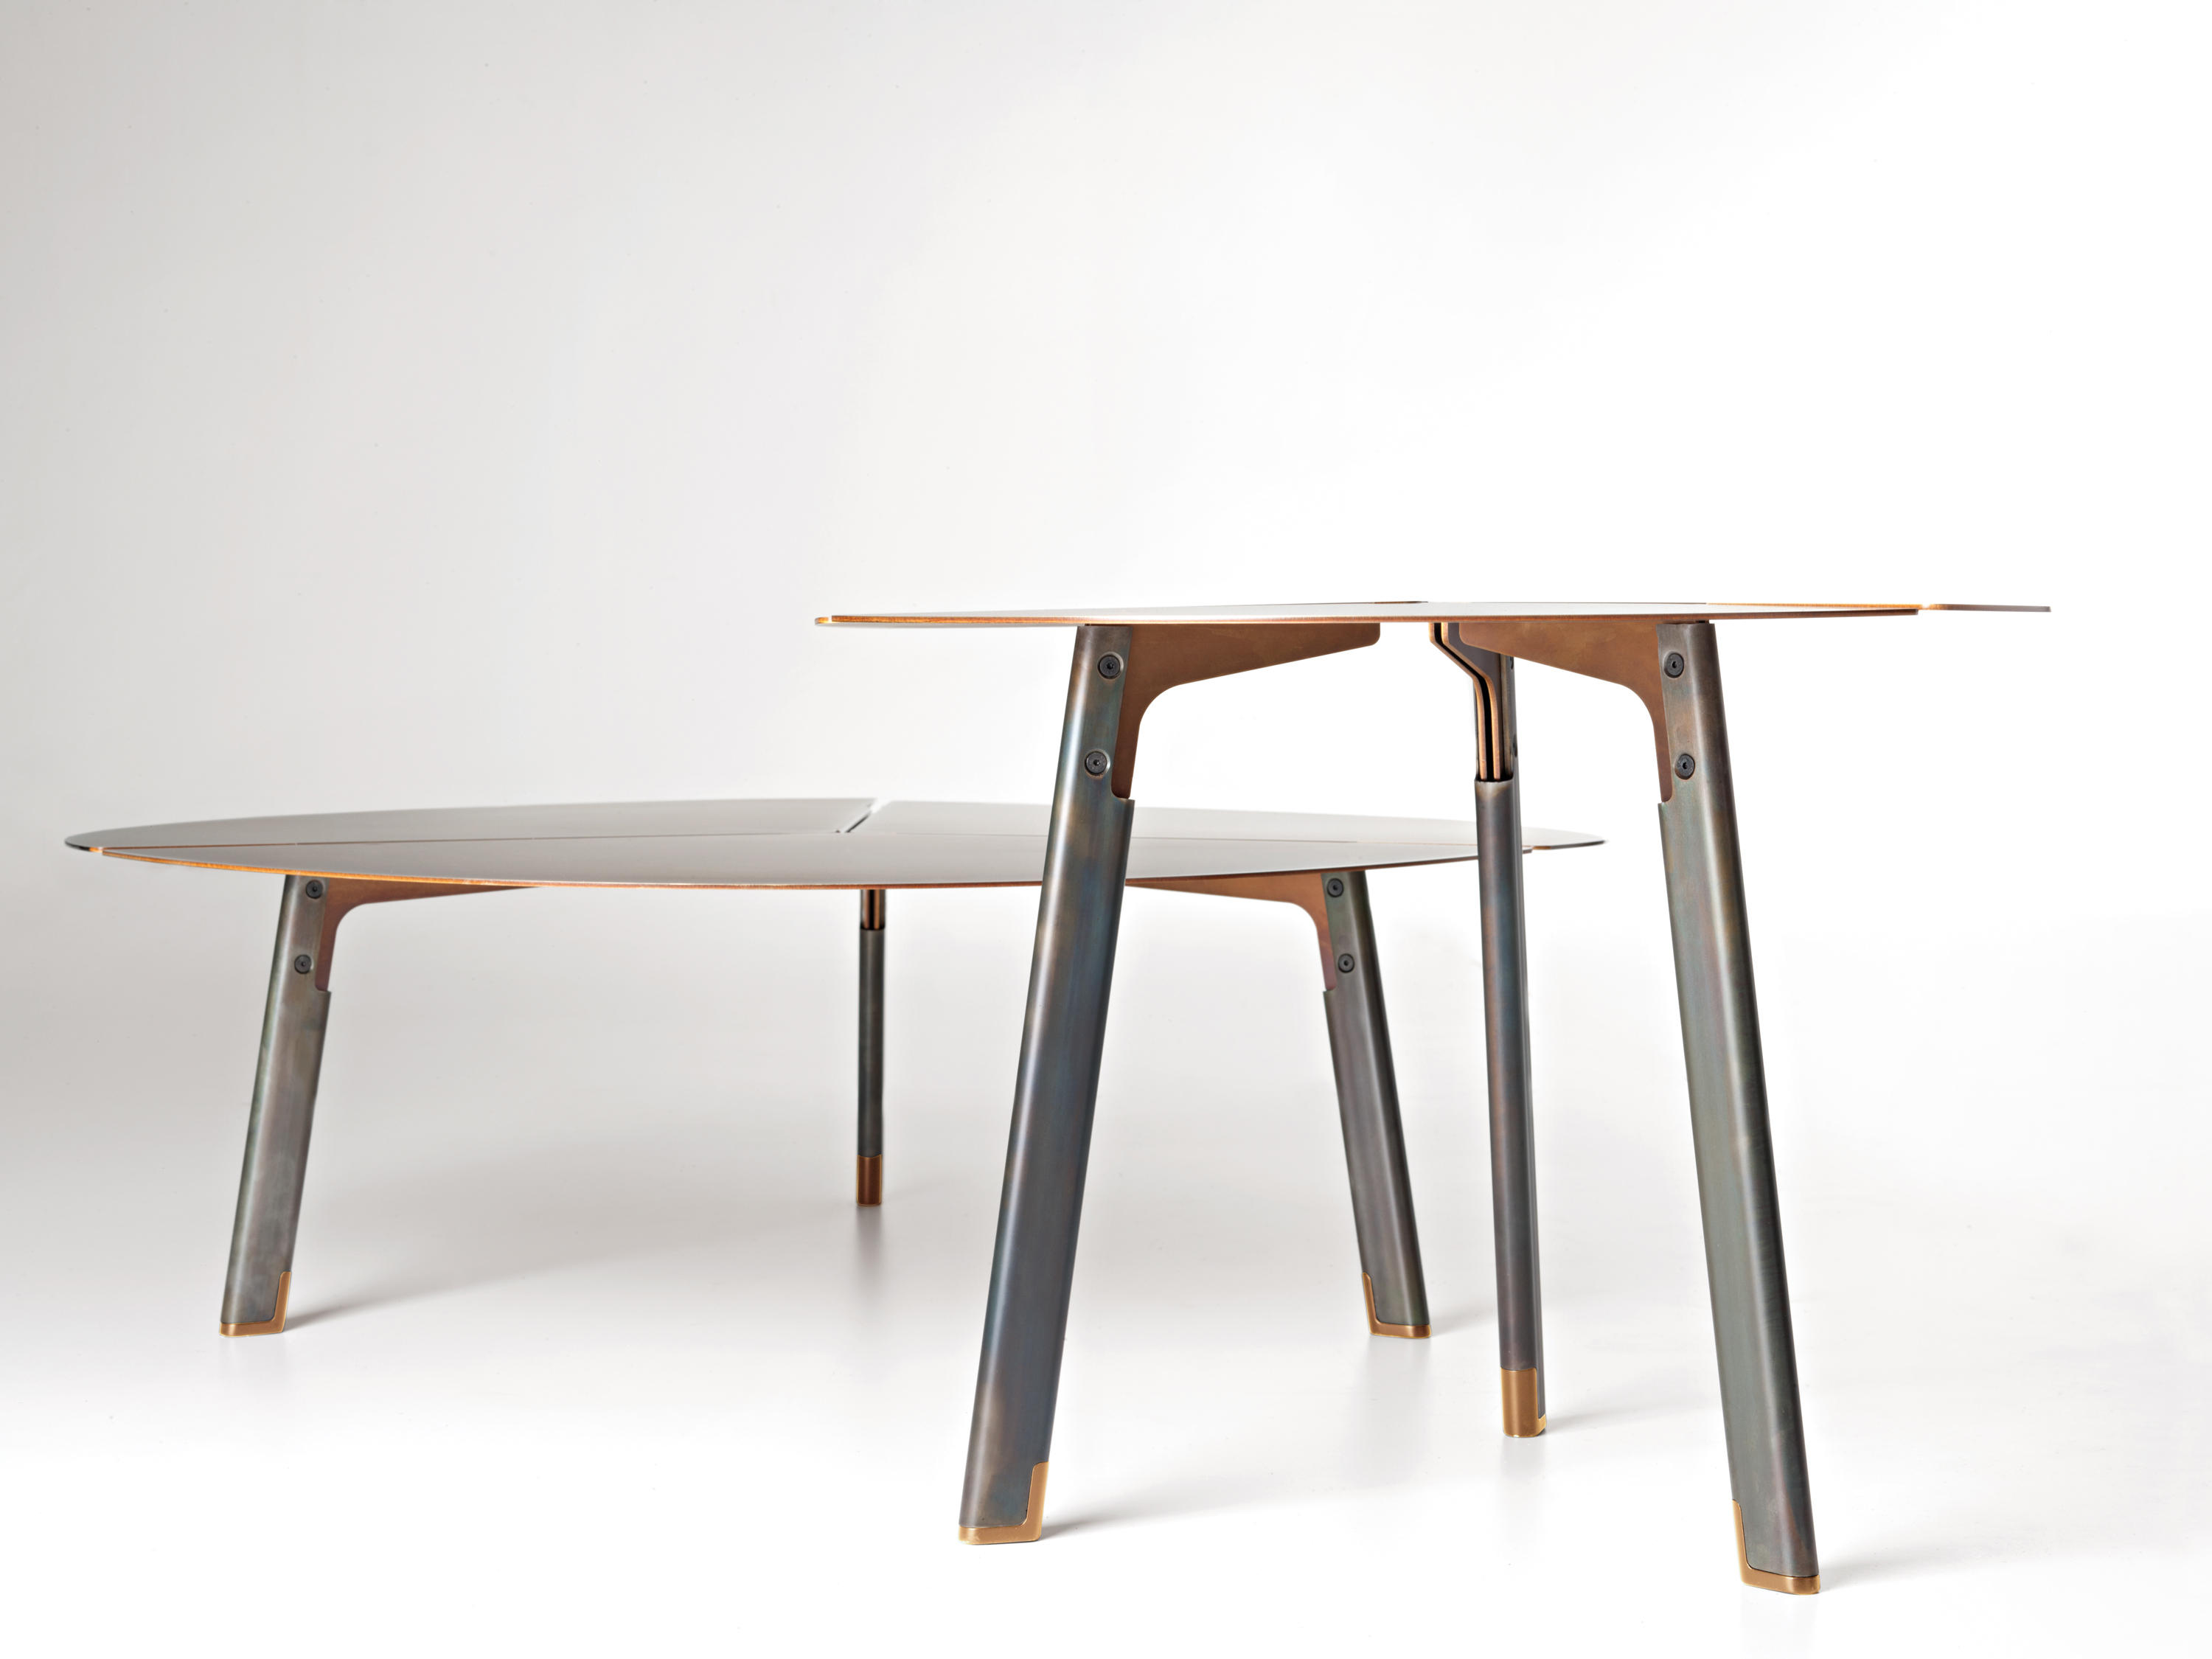 Placas Lounge Tables From De Castelli Architonic # Meuble Tv Separation De Piece